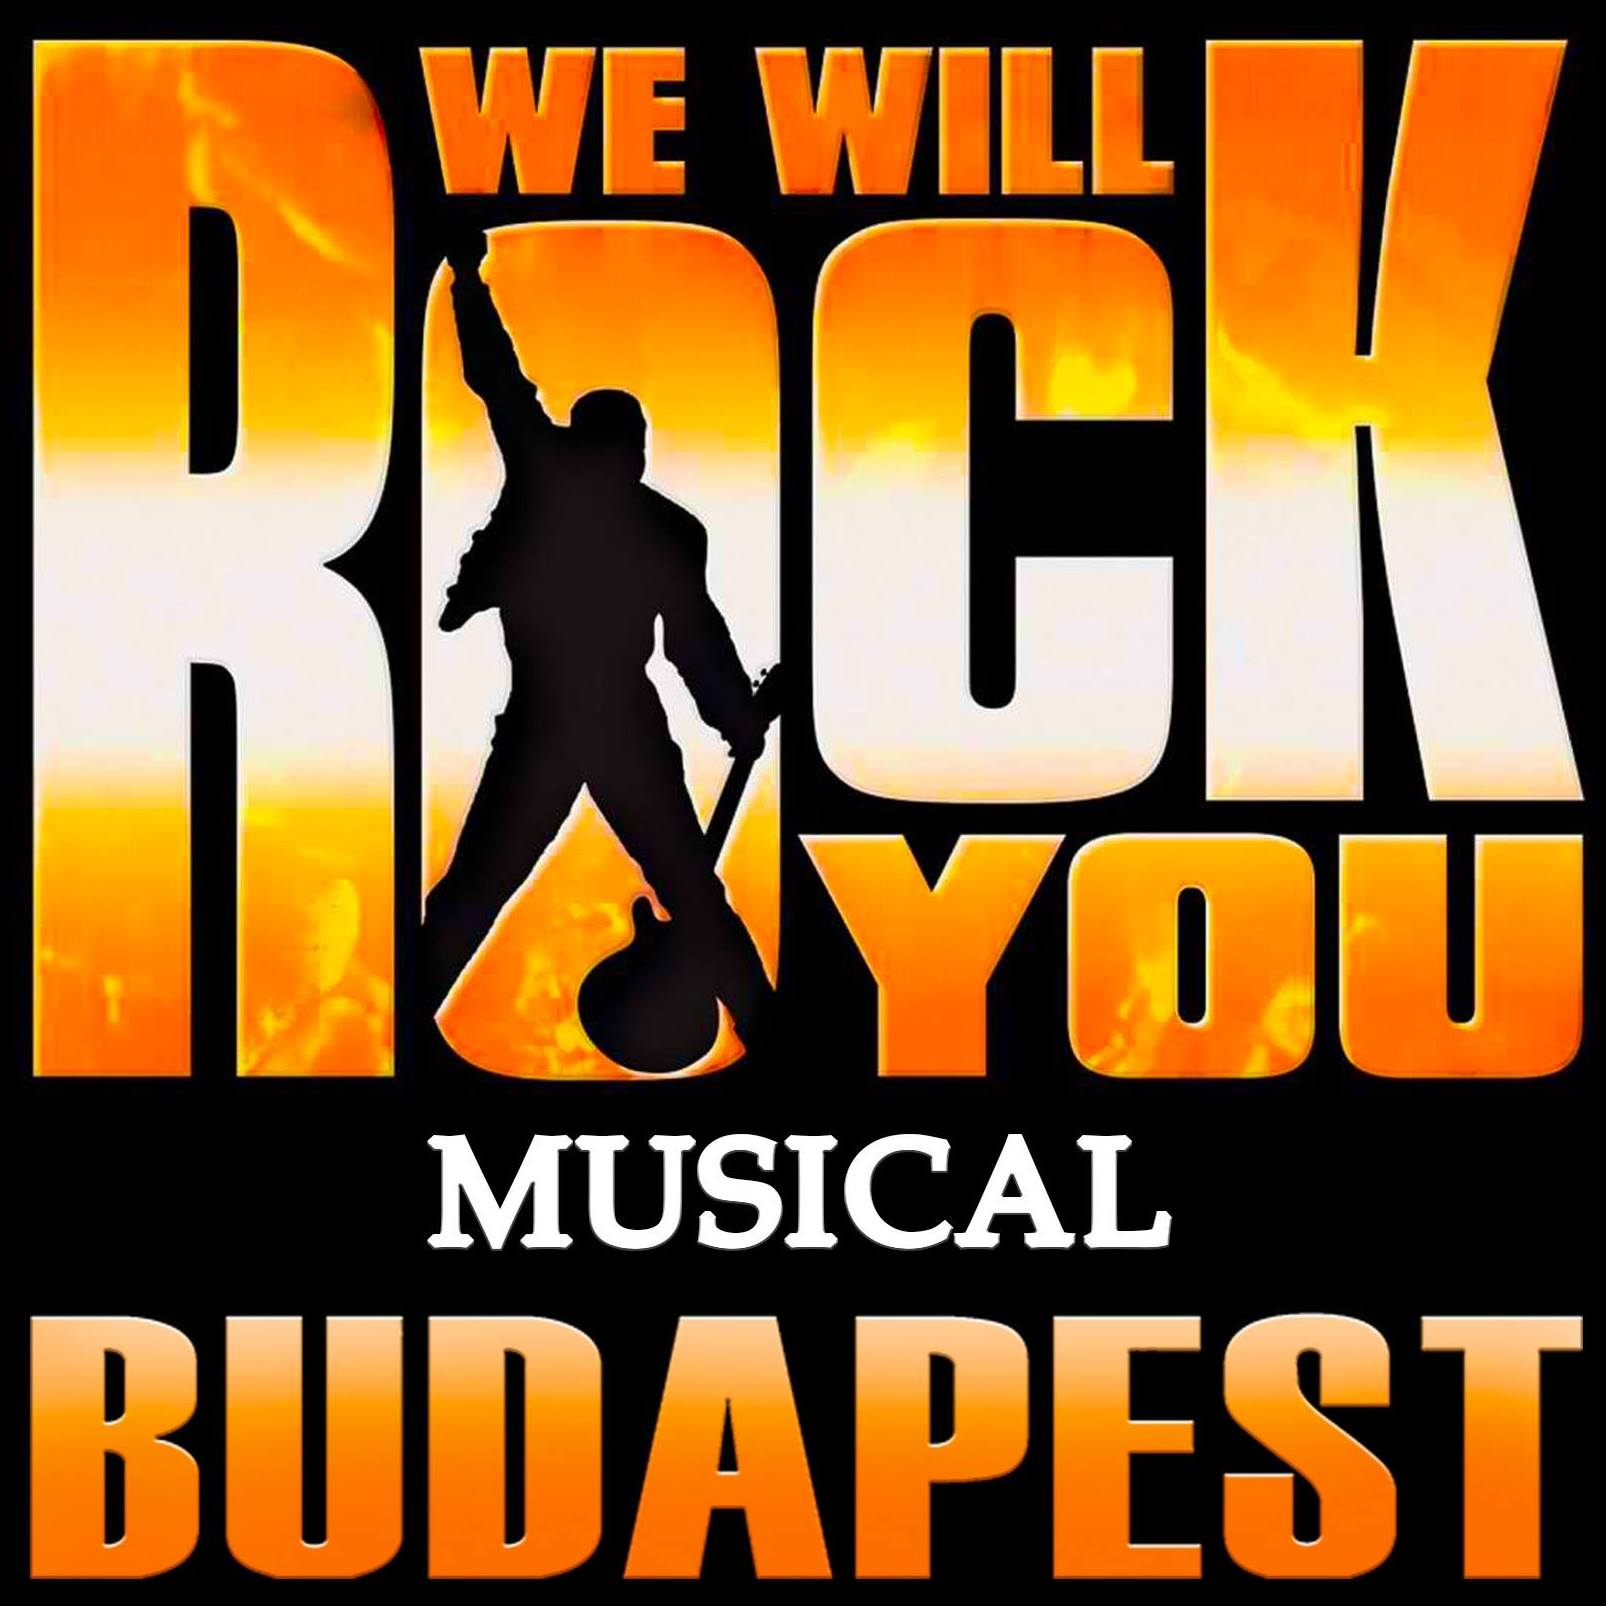 We Will Rock You Budapest - BOK SYMA Csarnok